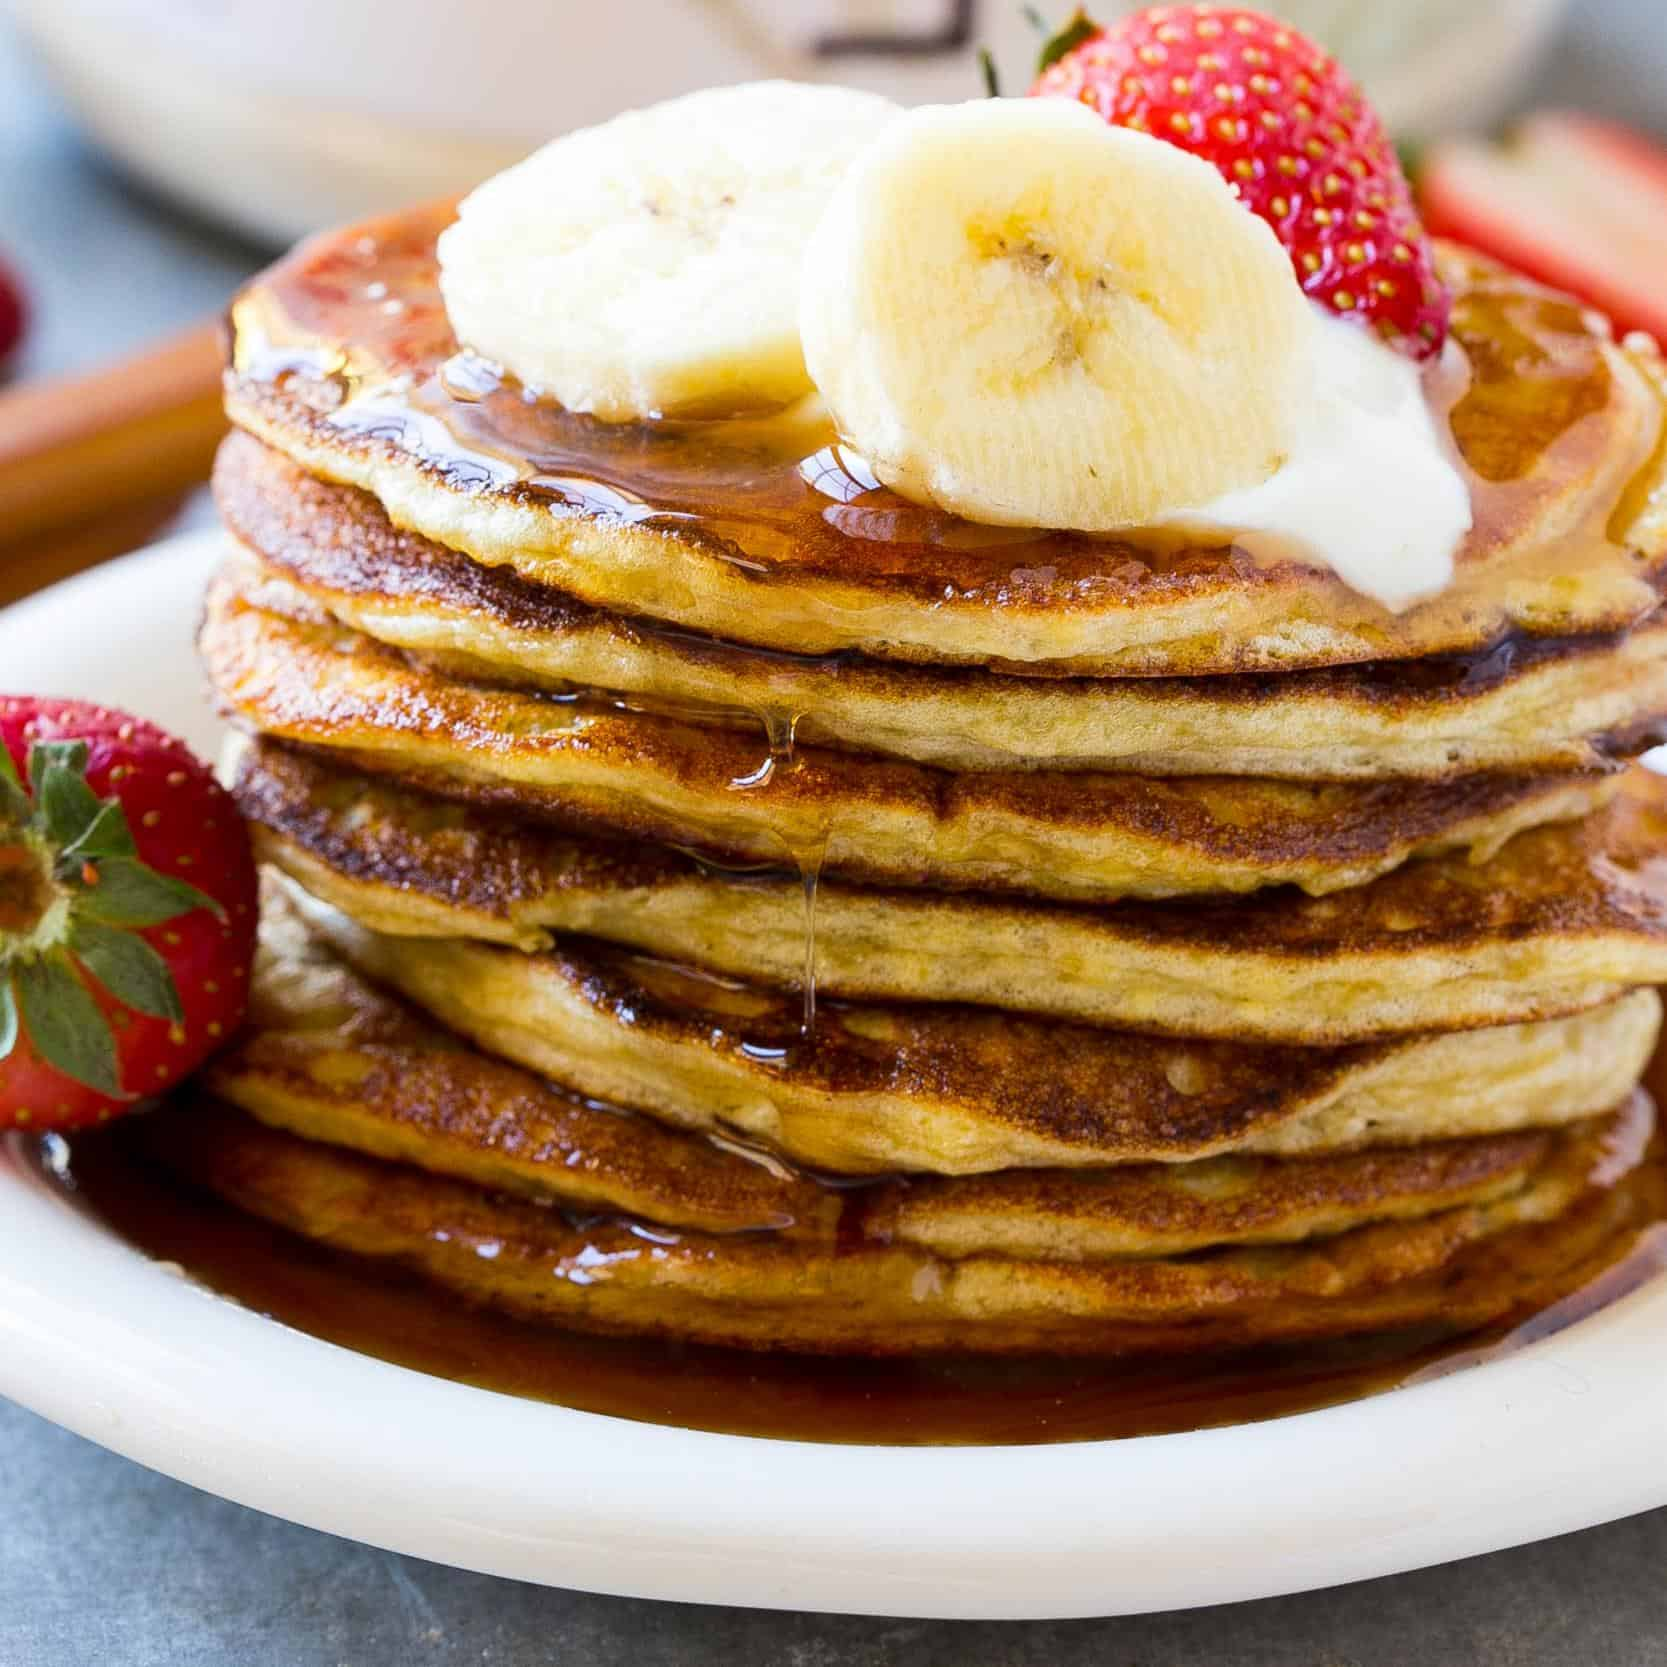 pancakes stacked on plate garnished with syrup